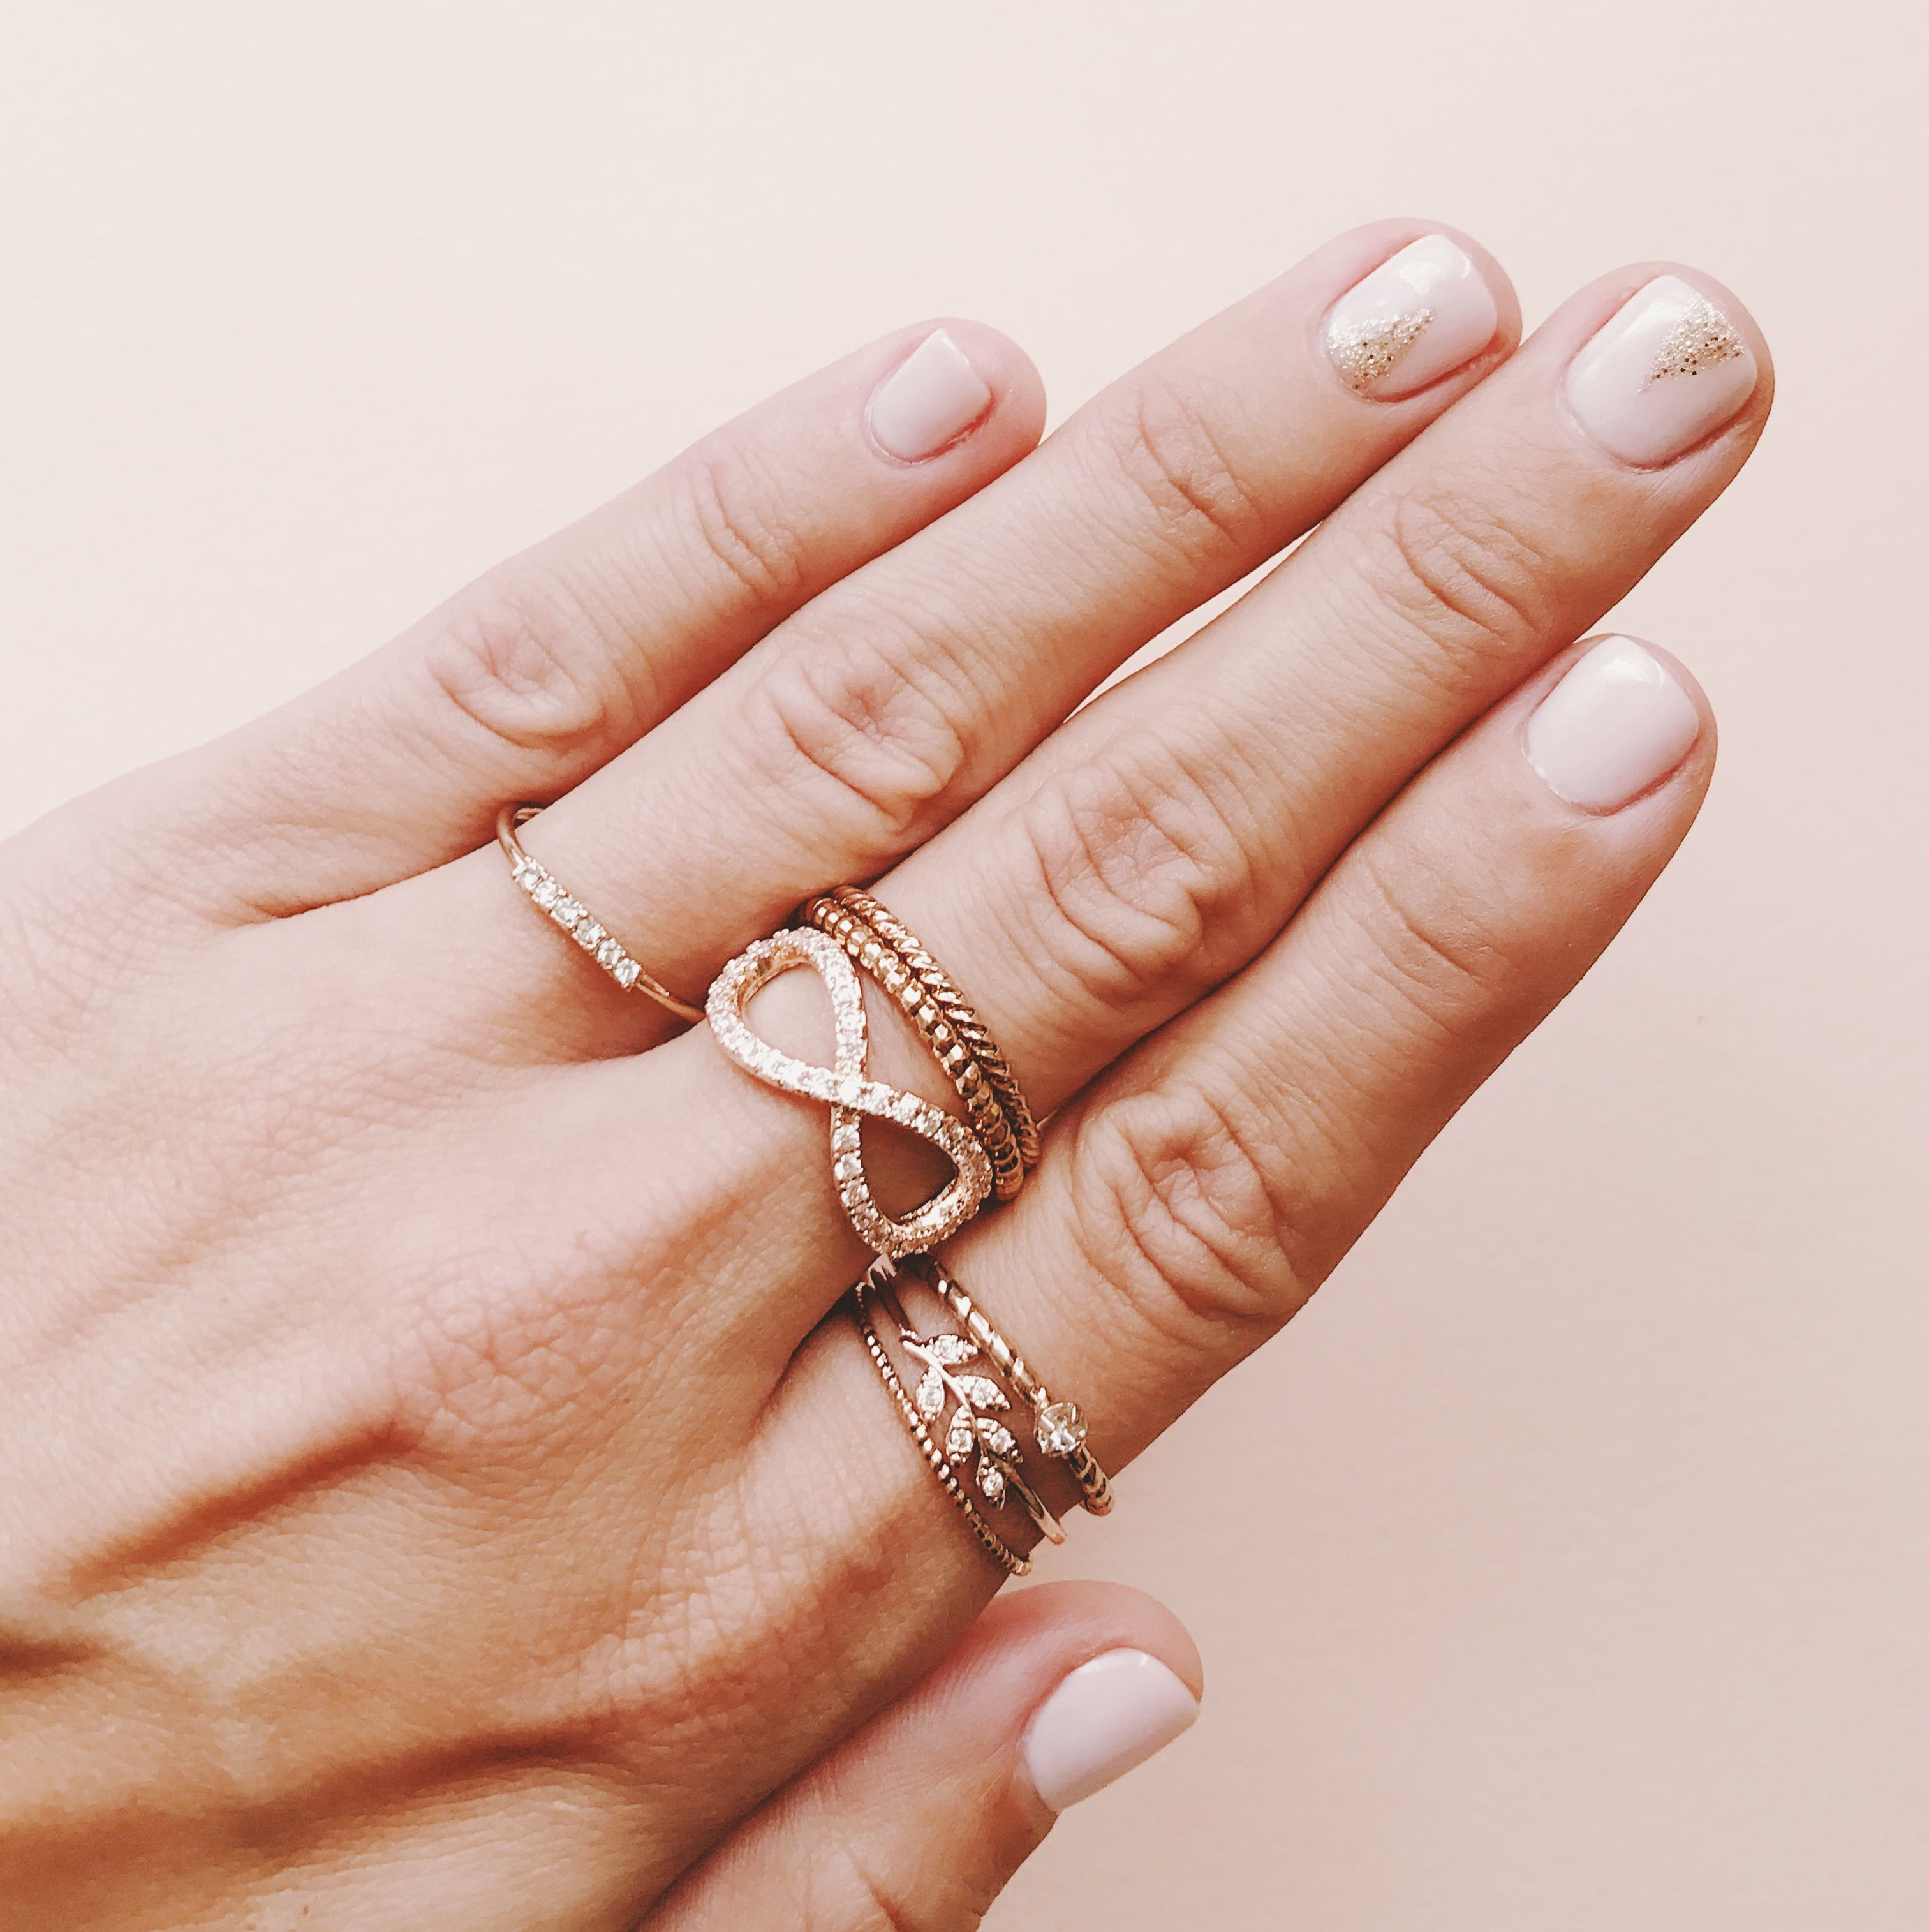 Kohls Jewelry Box Endearing Lc Lauren Conrad For Kohl's Stacking Rings  Jewels  Pinterest  Lc